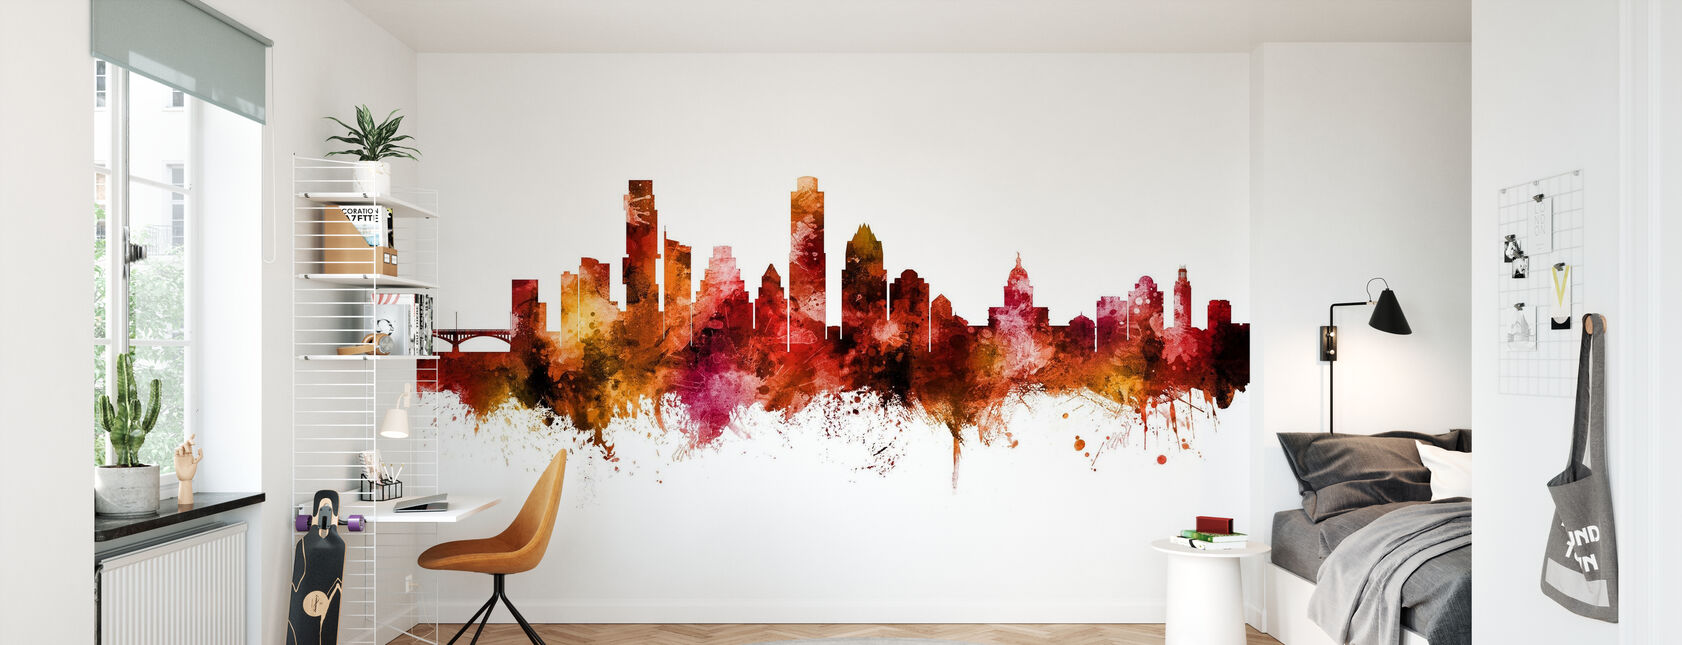 Austin Texas Skyline - Wallpaper - Kids Room